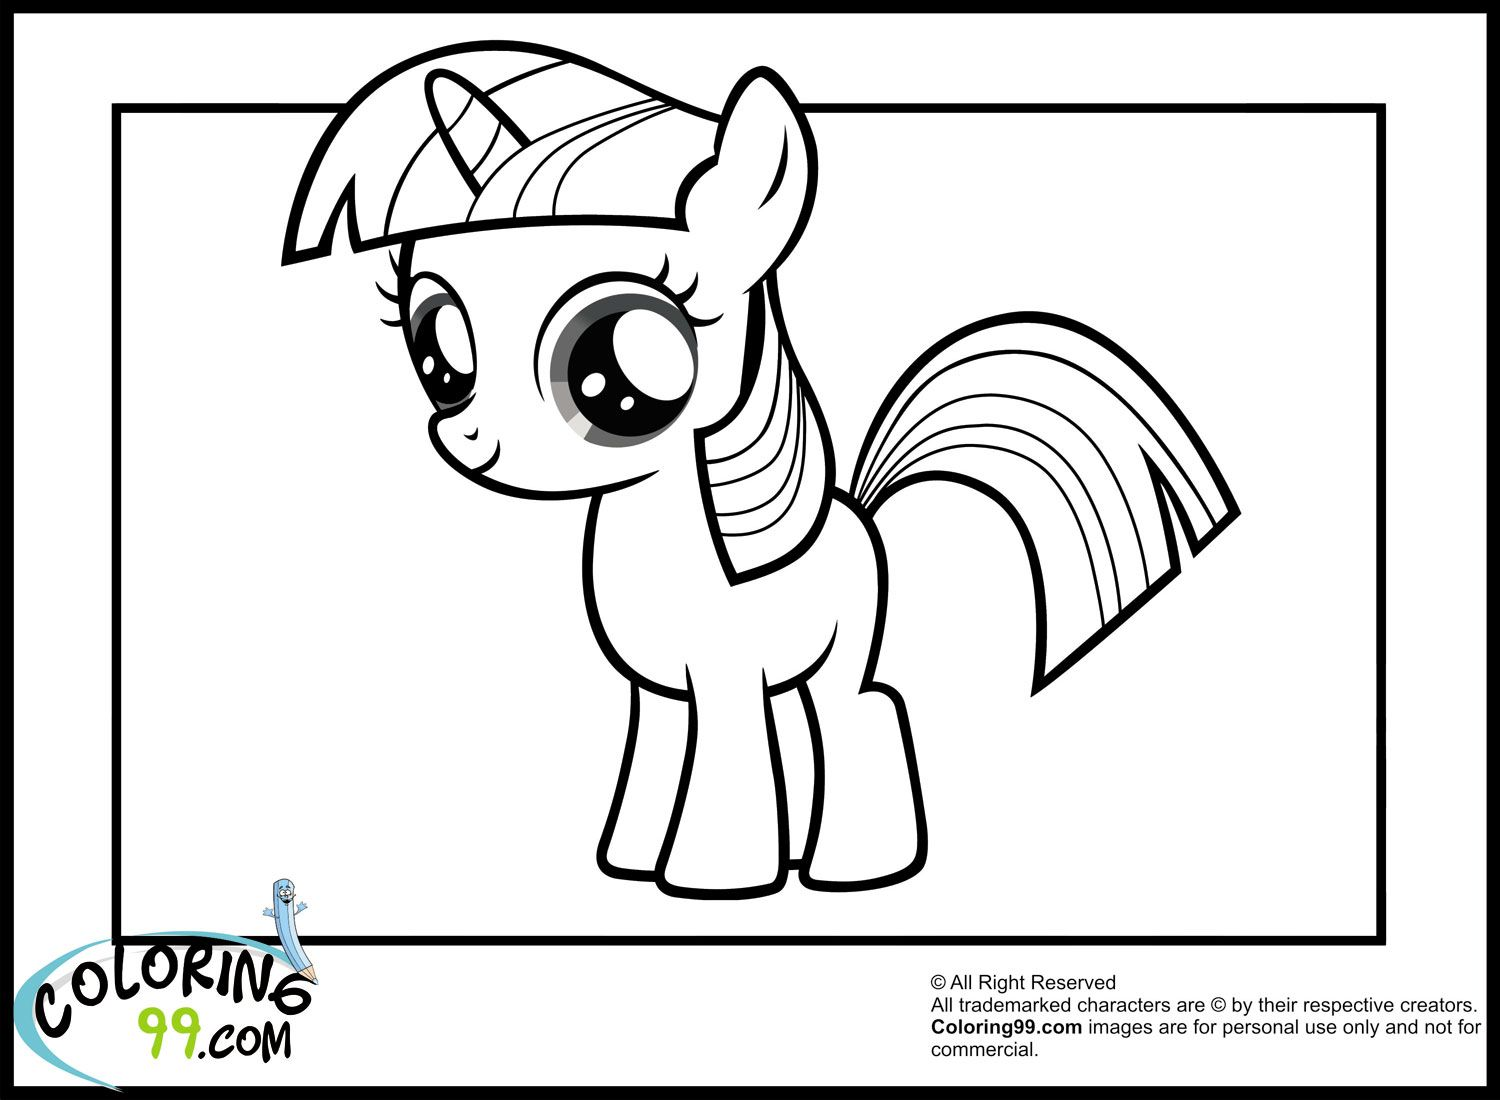 my little pony coloring pages twilight my little pony twilight sparkle coloring pages coloring99 - Twilight Sparkle Coloring Pages